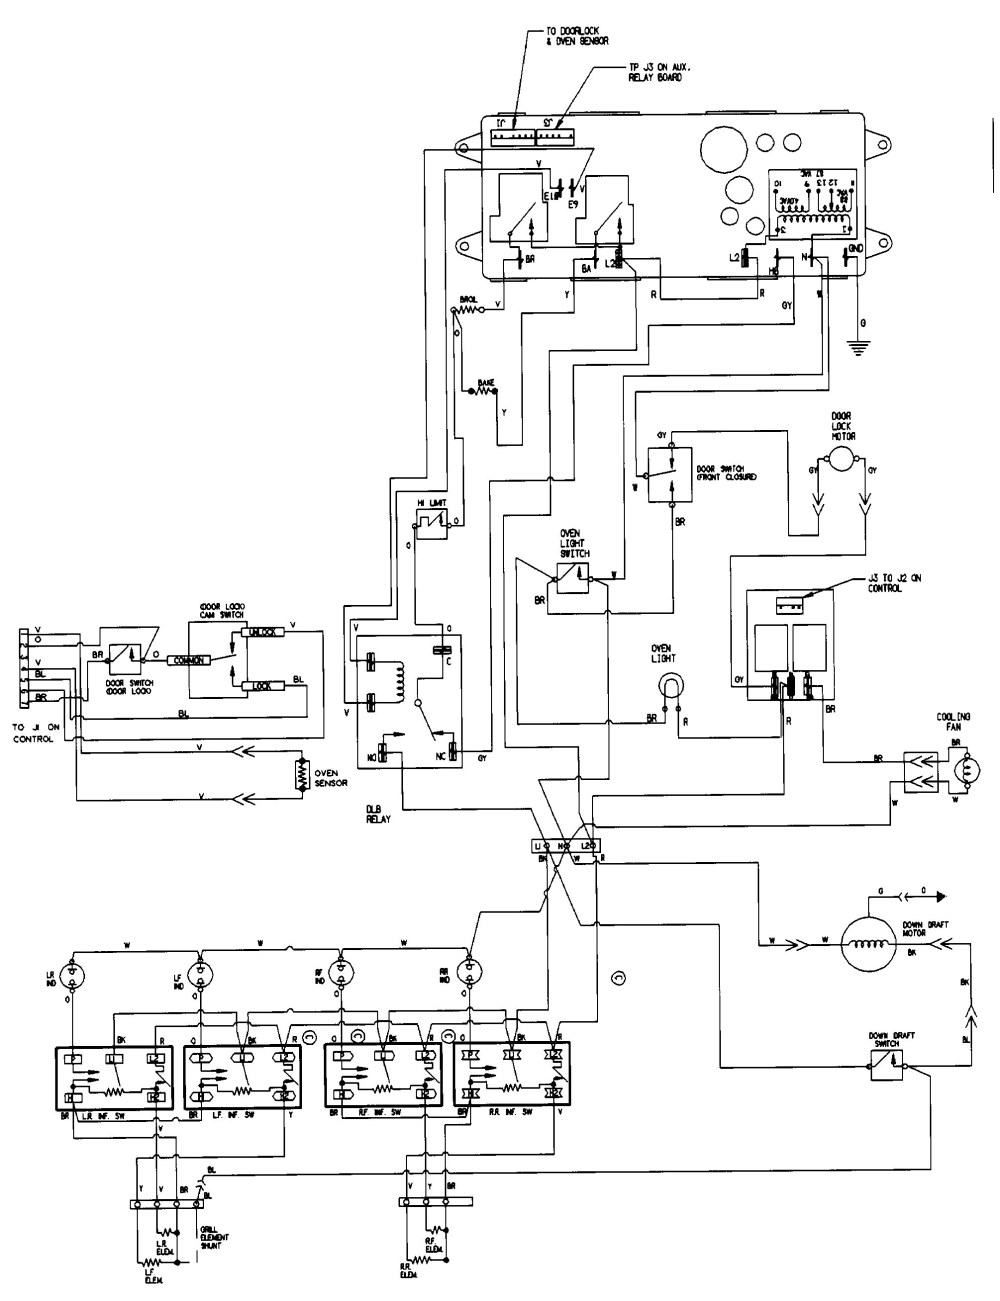 medium resolution of wiring diagram mitsubishi montero xls schematics wiring diagrams u2022 rh mrskinnytie com infiniti